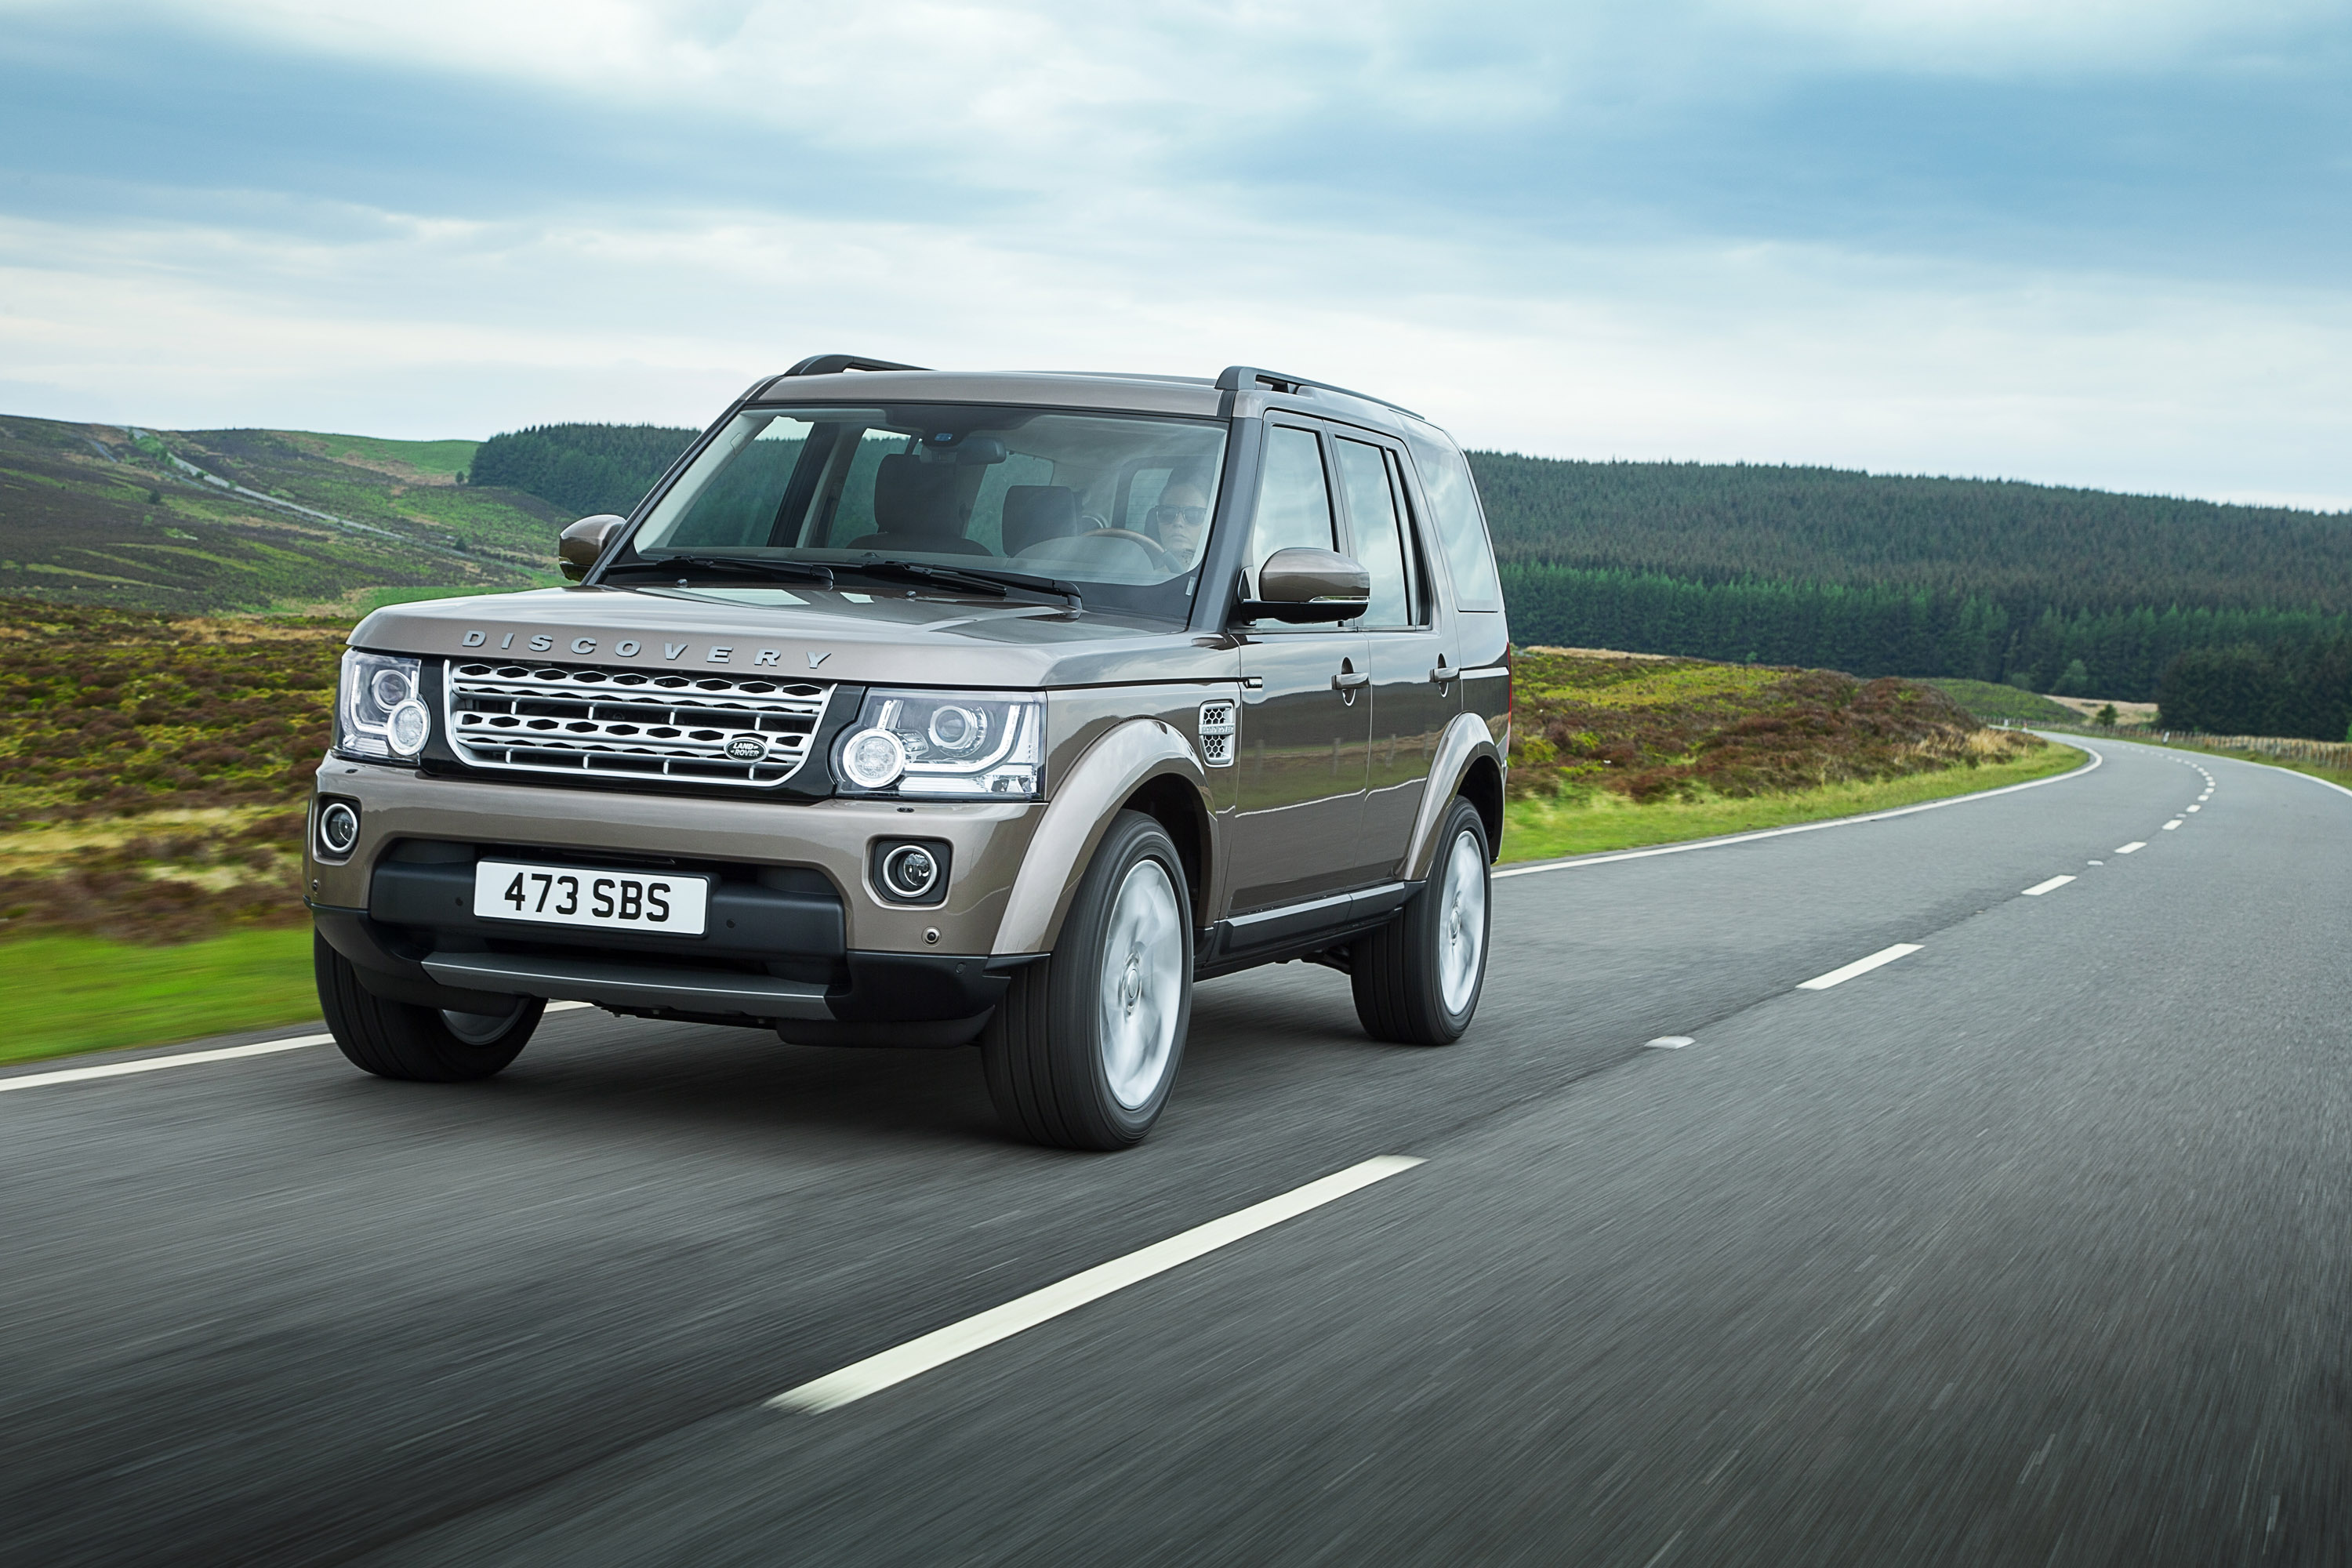 2017 Range Rover Configurations >> 2015 Land Rover Discovery - HD Pictures @ carsinvasion.com